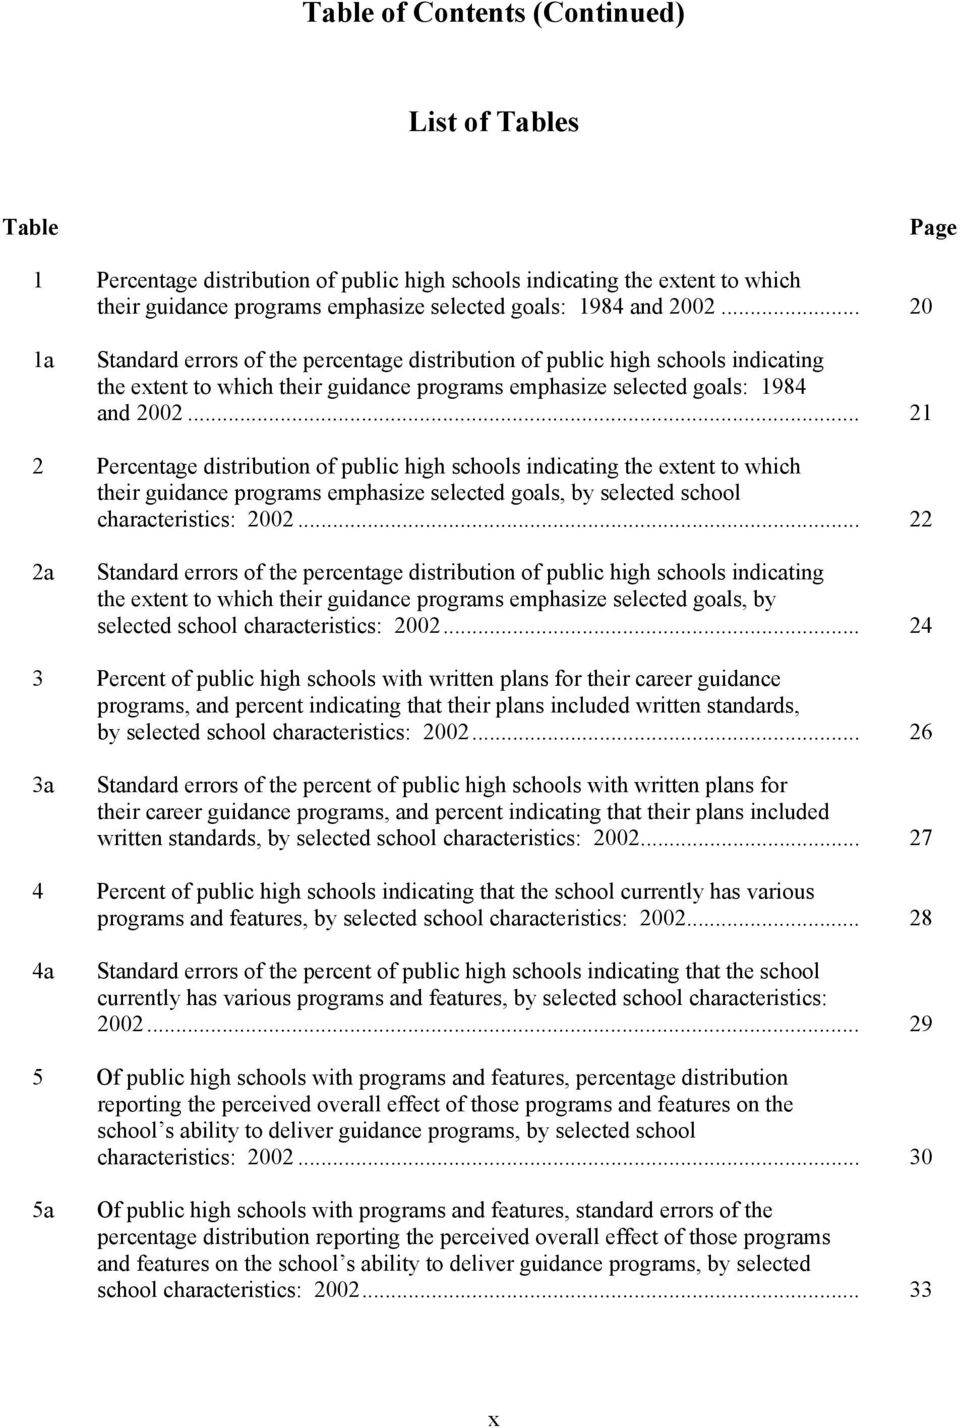 .. 21 2 Percentage distribution of public high s indicating the extent to which their guidance programs emphasize selected goals, by selected characteristics: 2002.